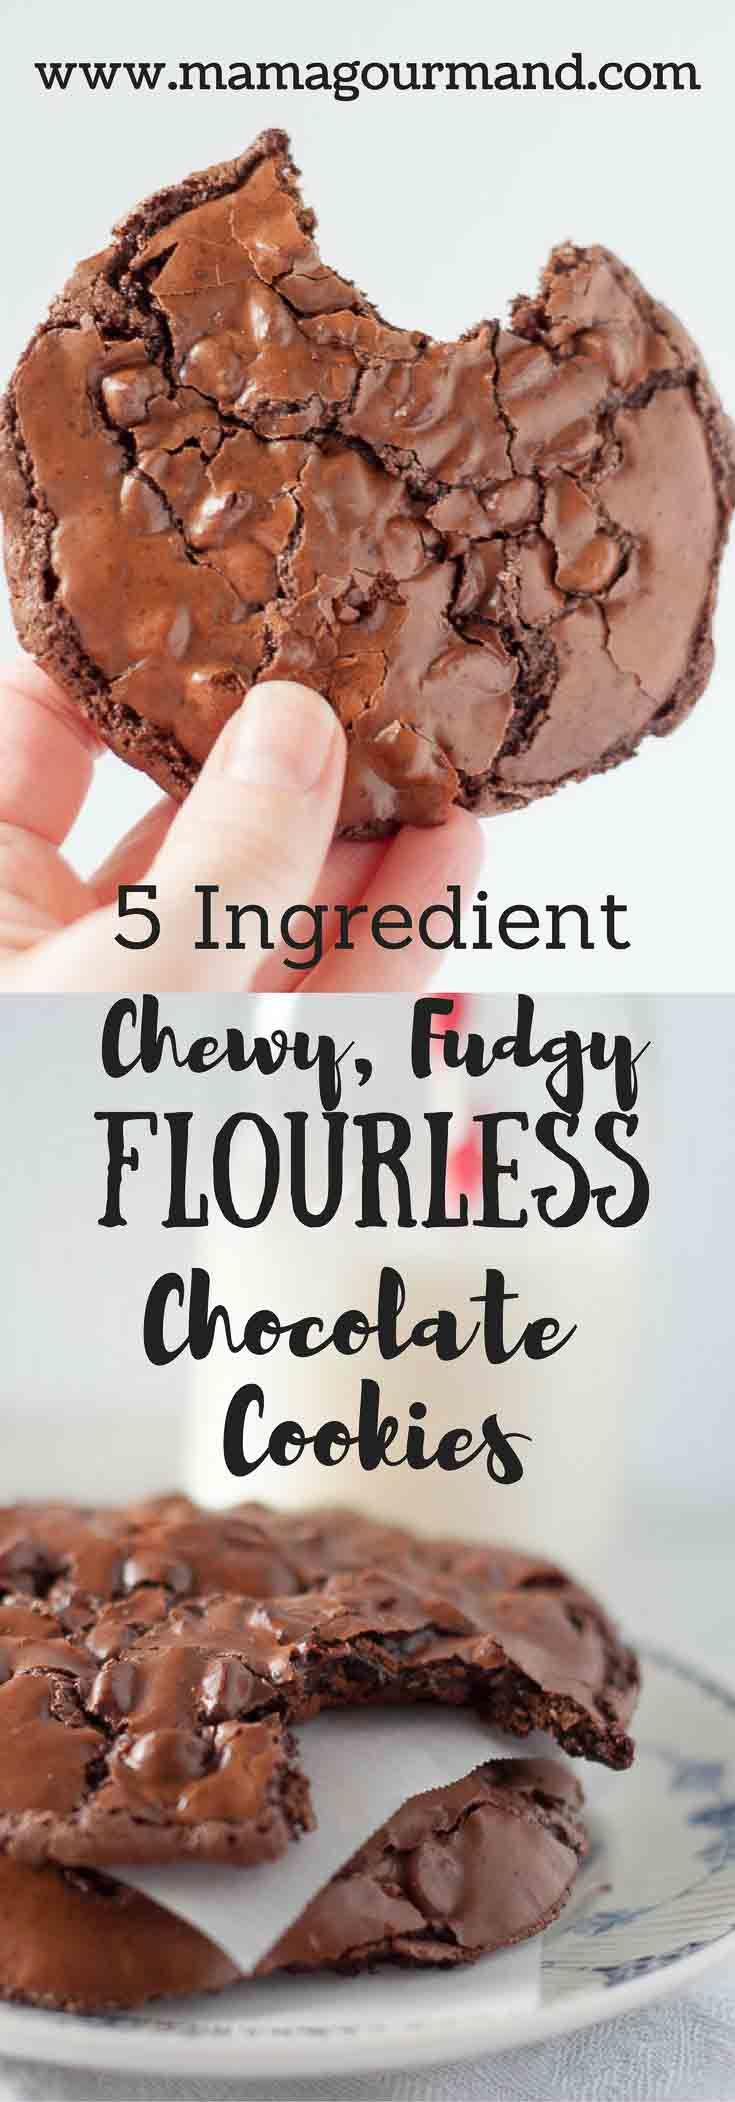 Chewy, Fudgy Flourless Chocolate Cookies are a naturally gluten free chocolate cookie with only…